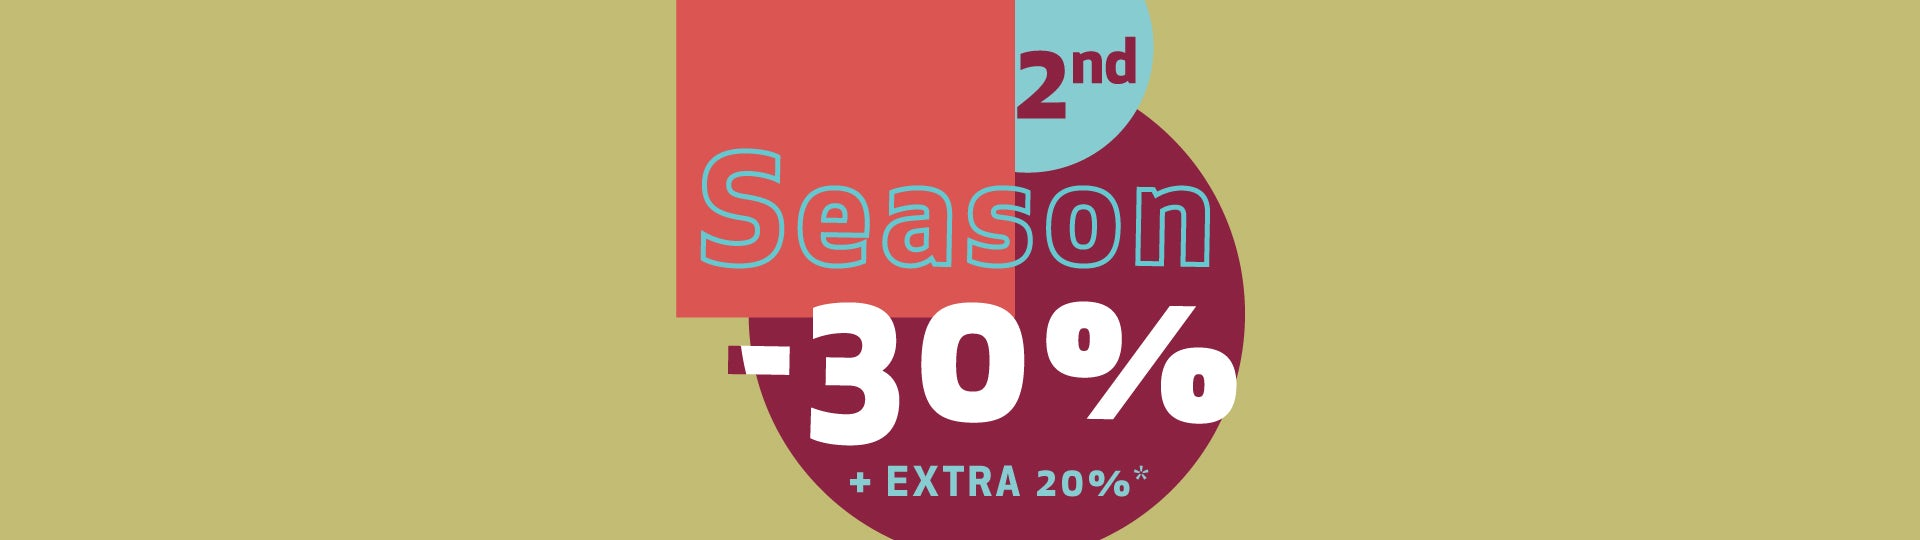 Second Season - 30%